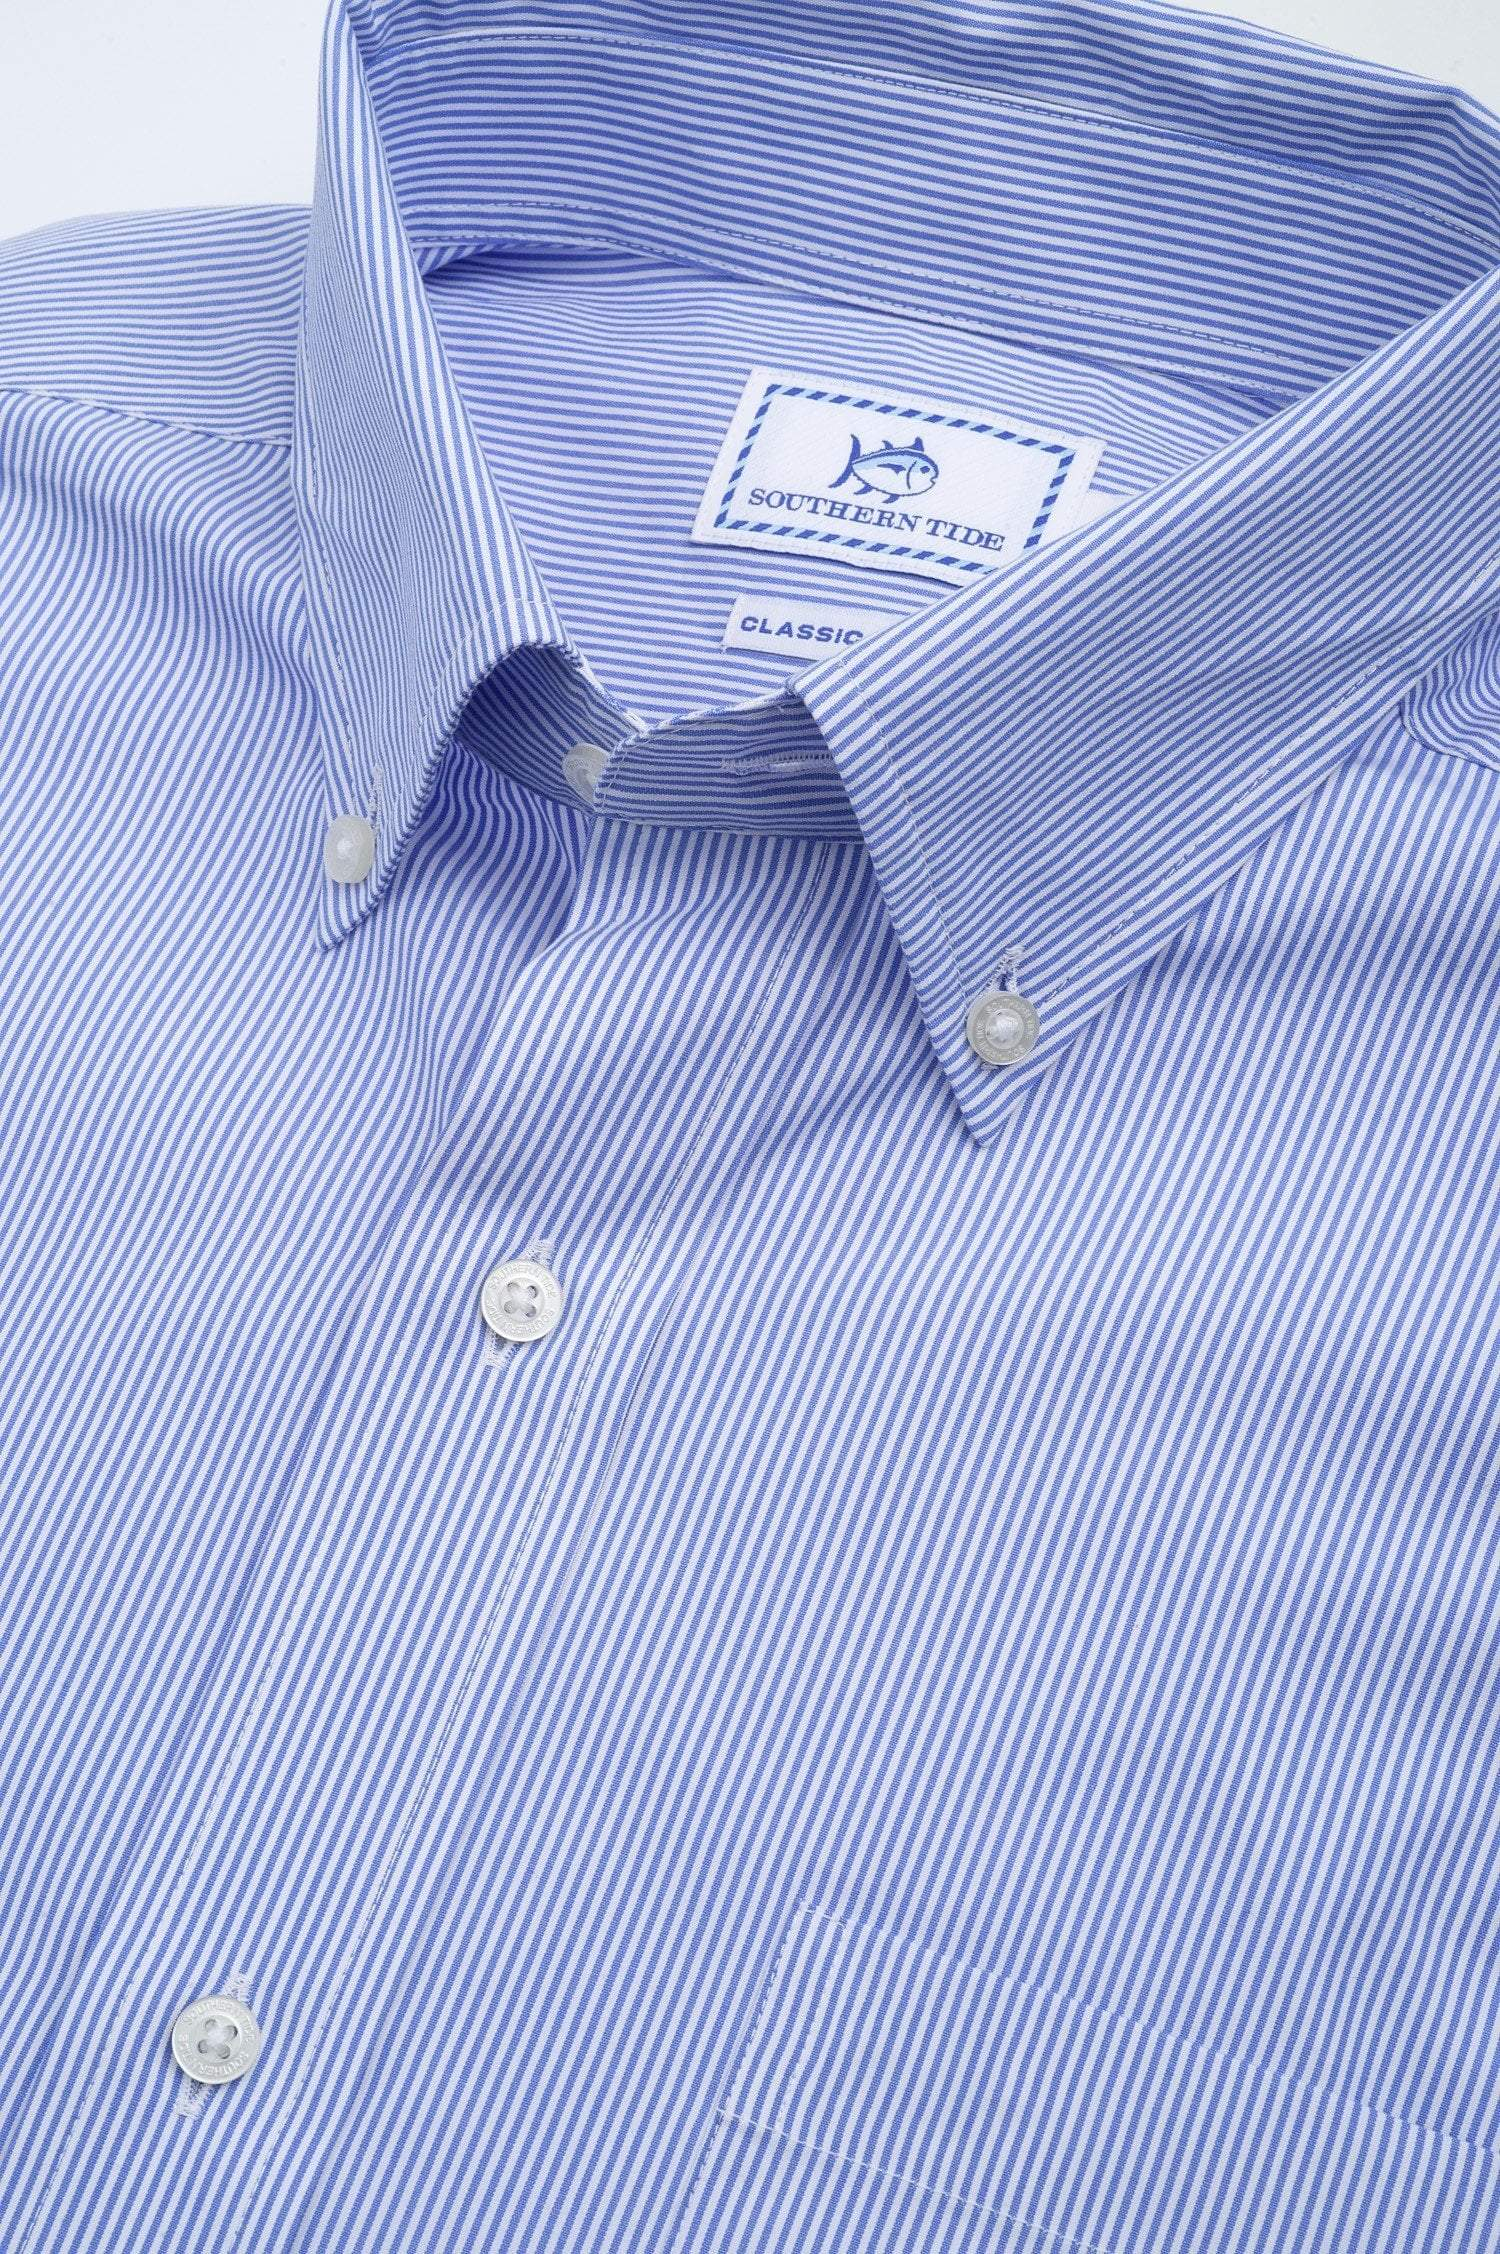 SOUTHERN TIDE Men's Sport Shirt Southern Tide Mens Edgewood Stripe Sport Shirt || David's Clothing